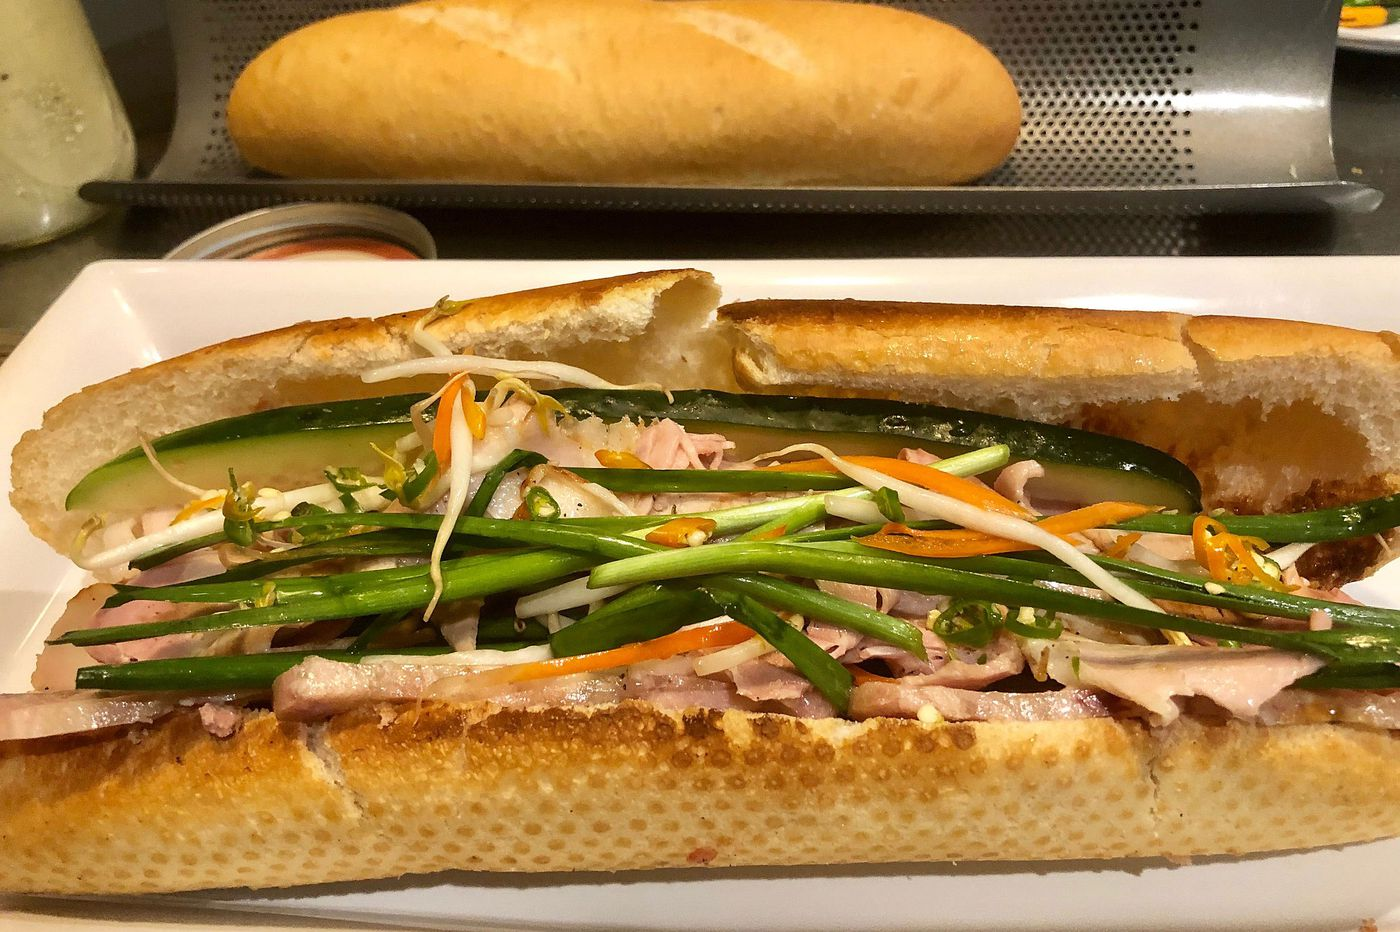 Banh mi from Hop Sing's owner by way of Saigon and ... North Korea?